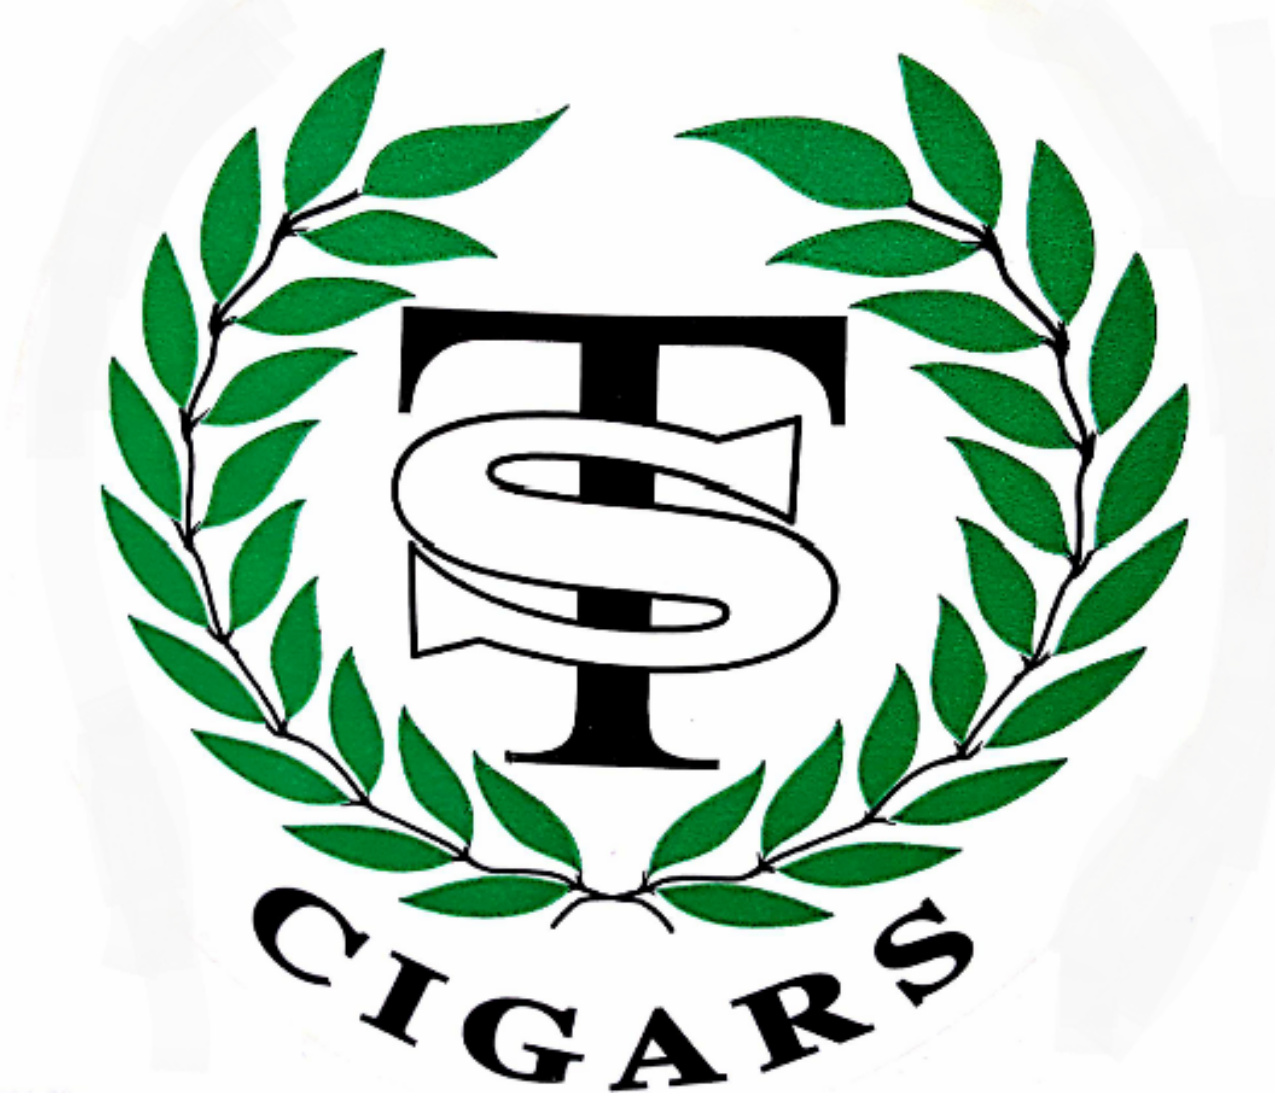 S.T.CIGARS